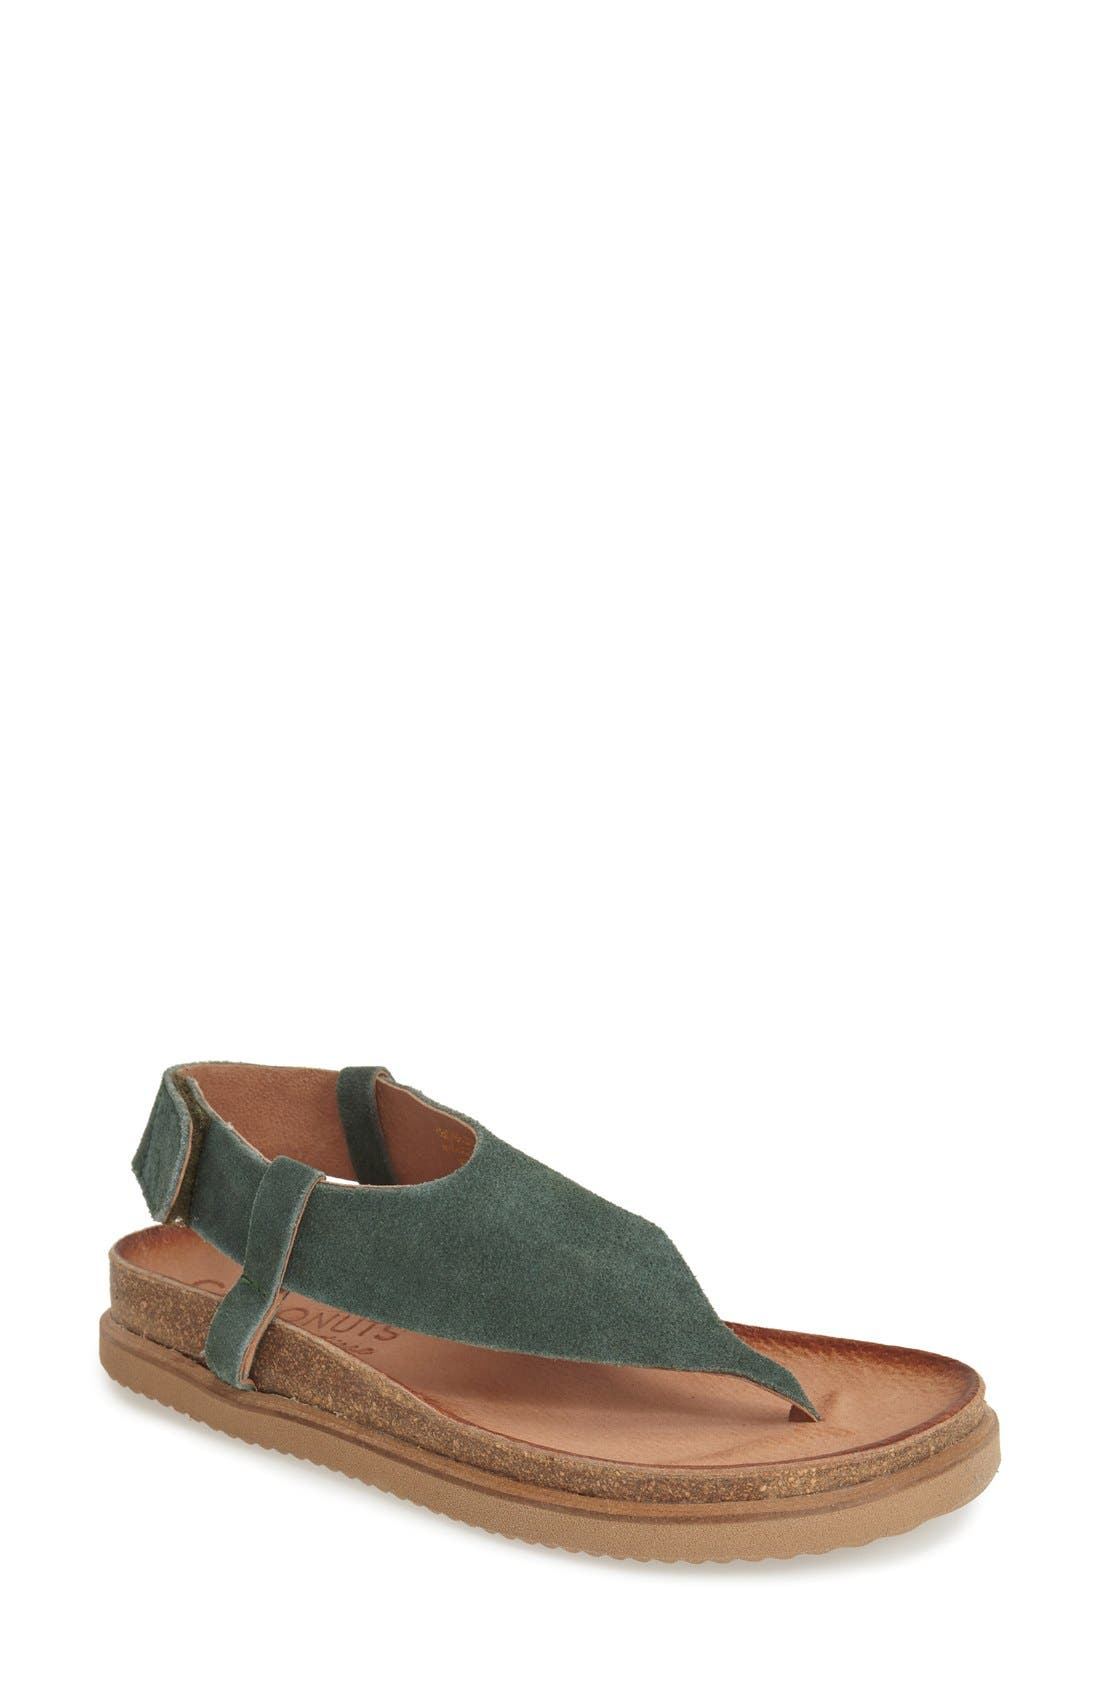 Main Image - Coconuts by Matisse 'Doobie' Suede Thong Sandal (Women)